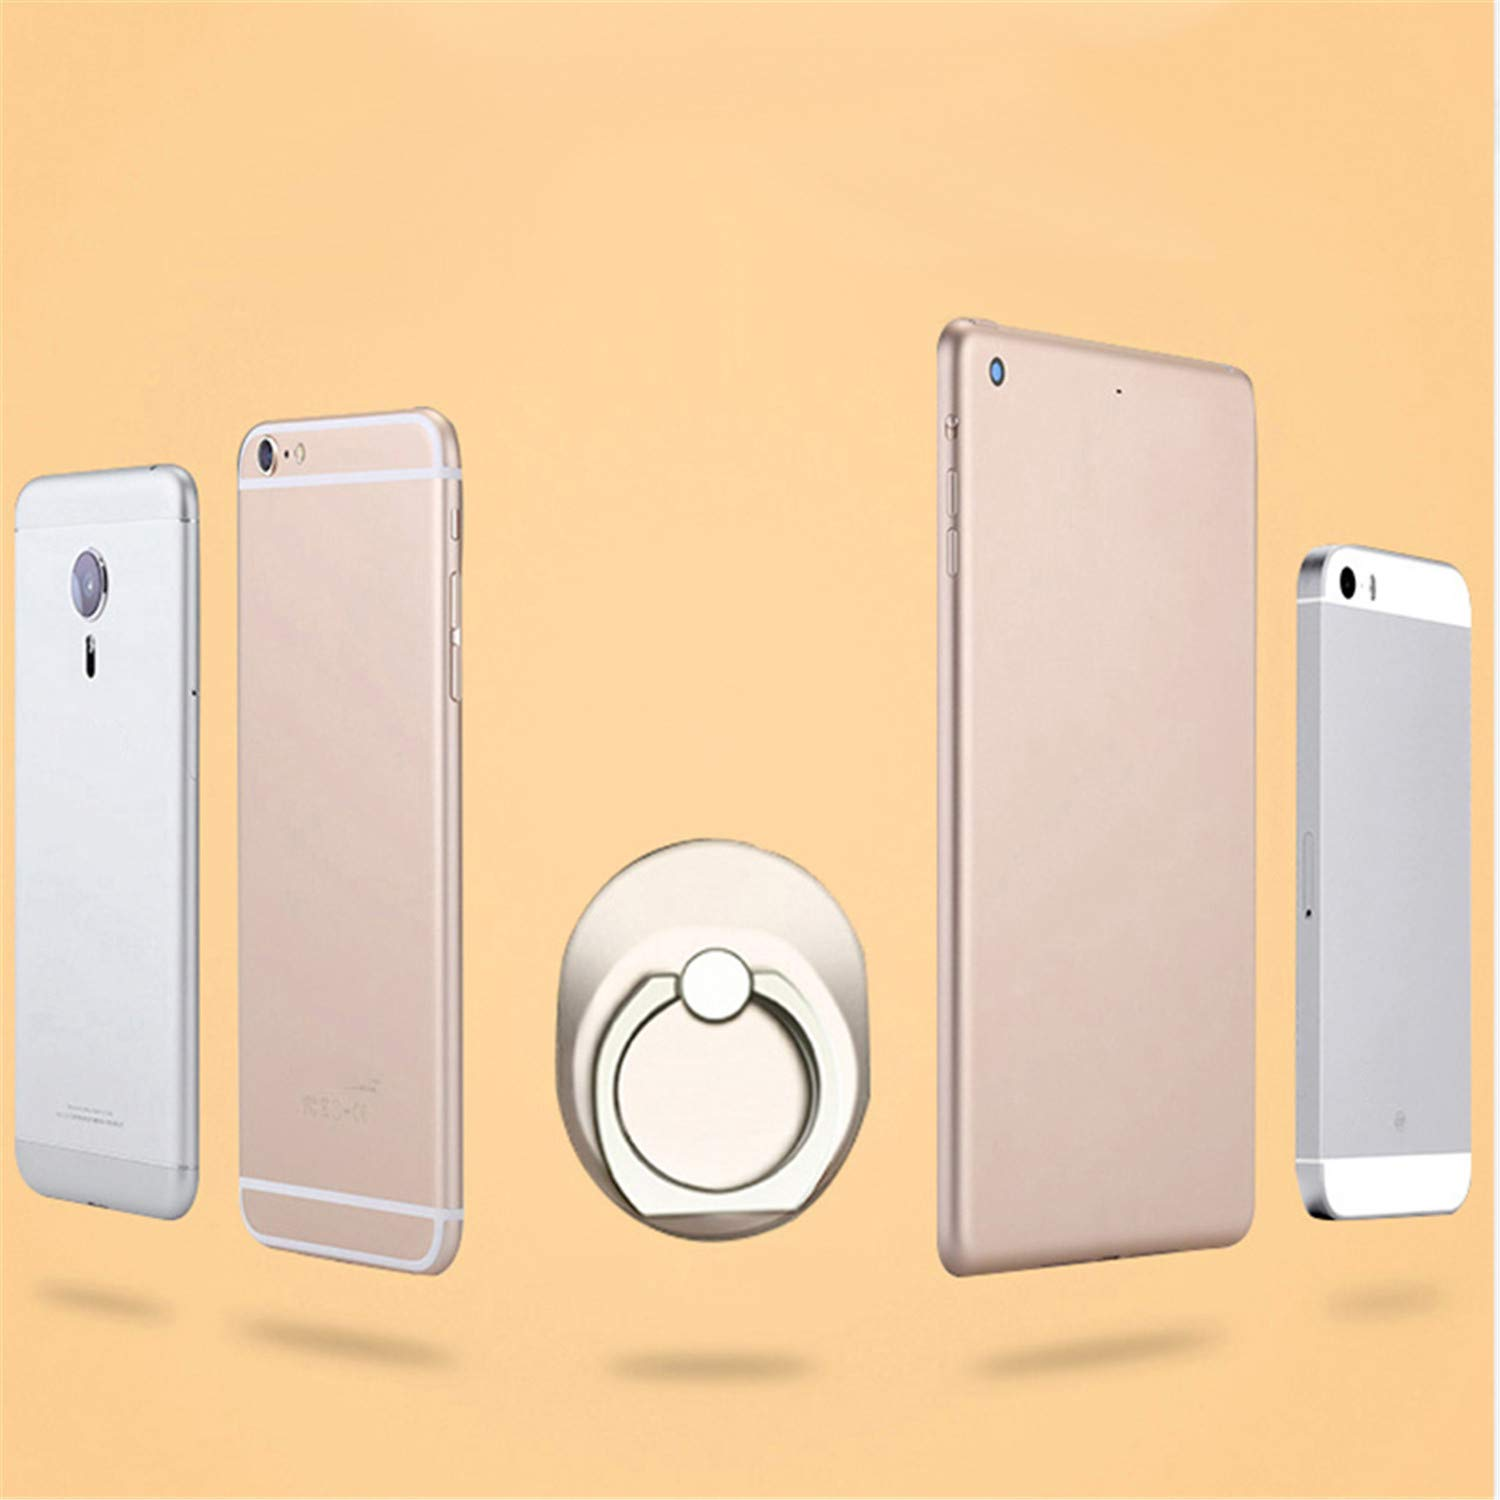 Amazon.com: Zesoma Round Finger Phone Ring Holder Grip Mount Support for iPhone X 8 7 6 Plus 5Se Honor Note10 Huawei Nova 3I Smartphone Accessories Rose: ...